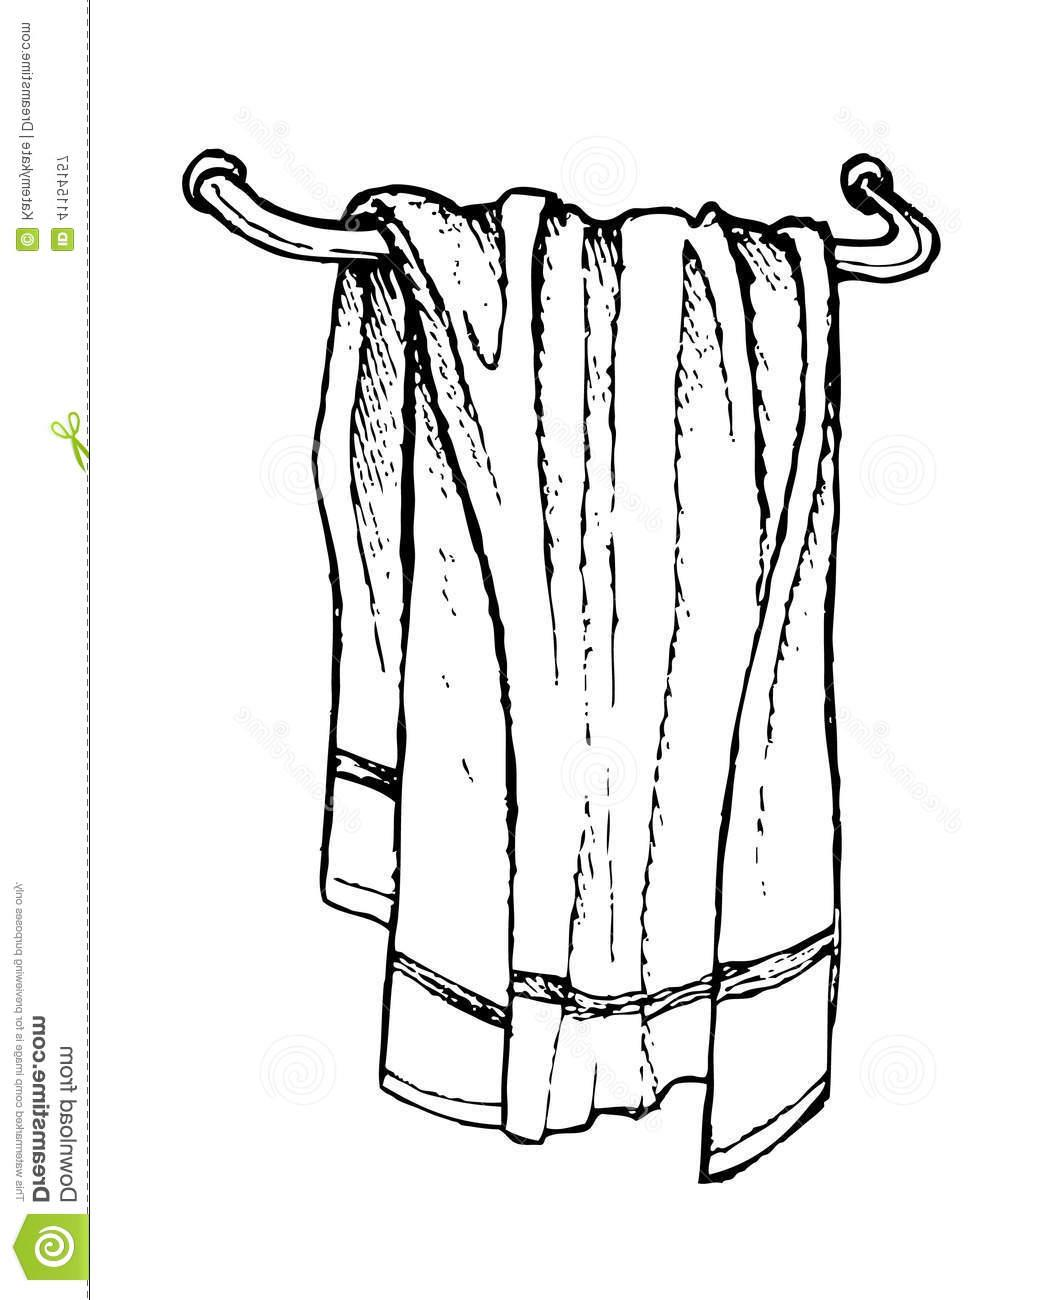 Towel clipart black and white 7 » Clipart Station.